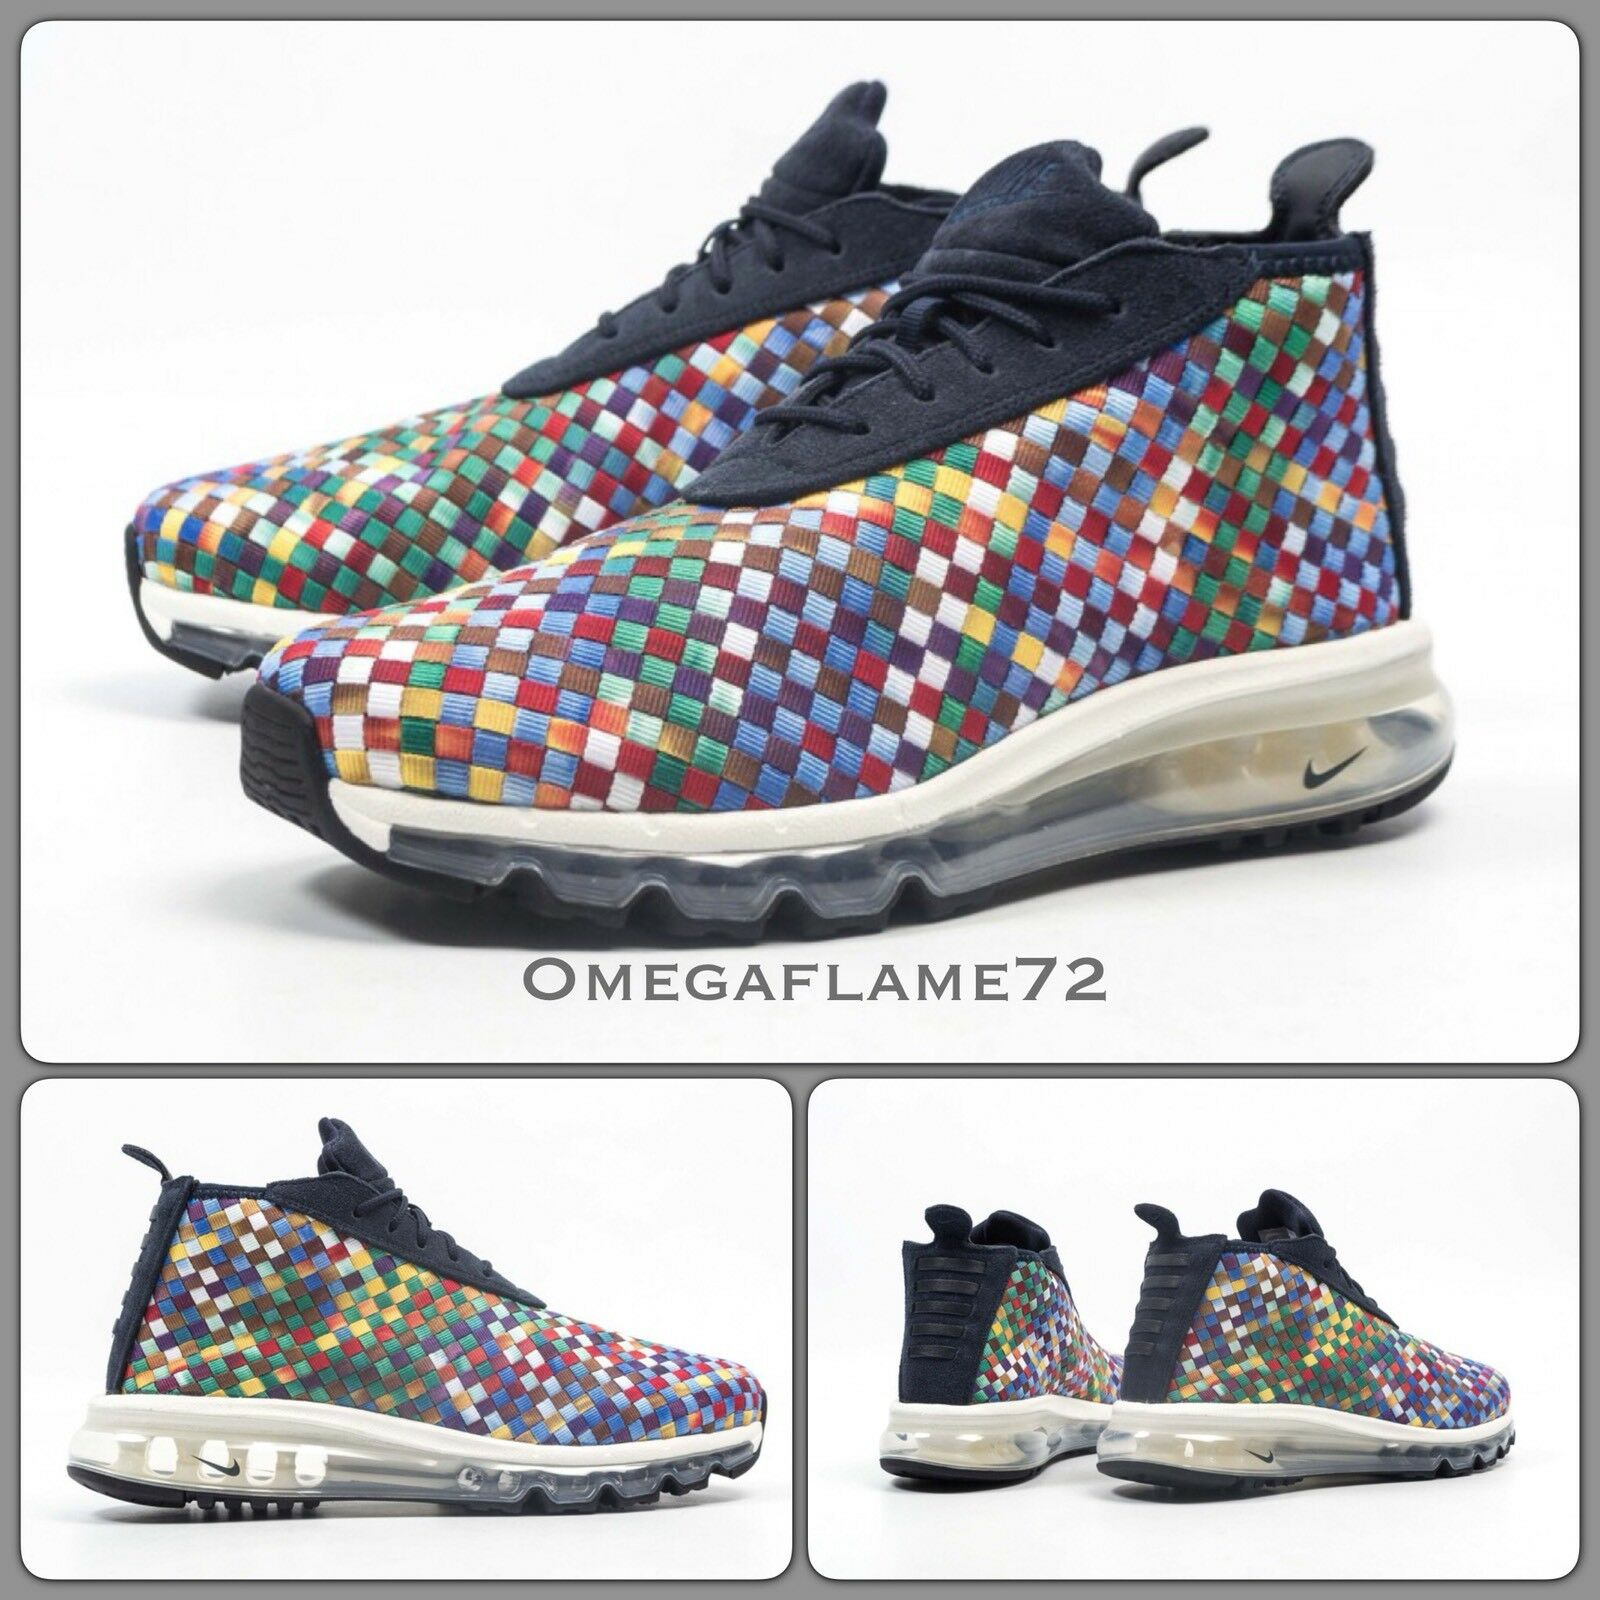 Nike Boot Air Max Woven Boot Nike Multicolourouge AH8139-400,8 EU 42.5 US 9 a4bfe0